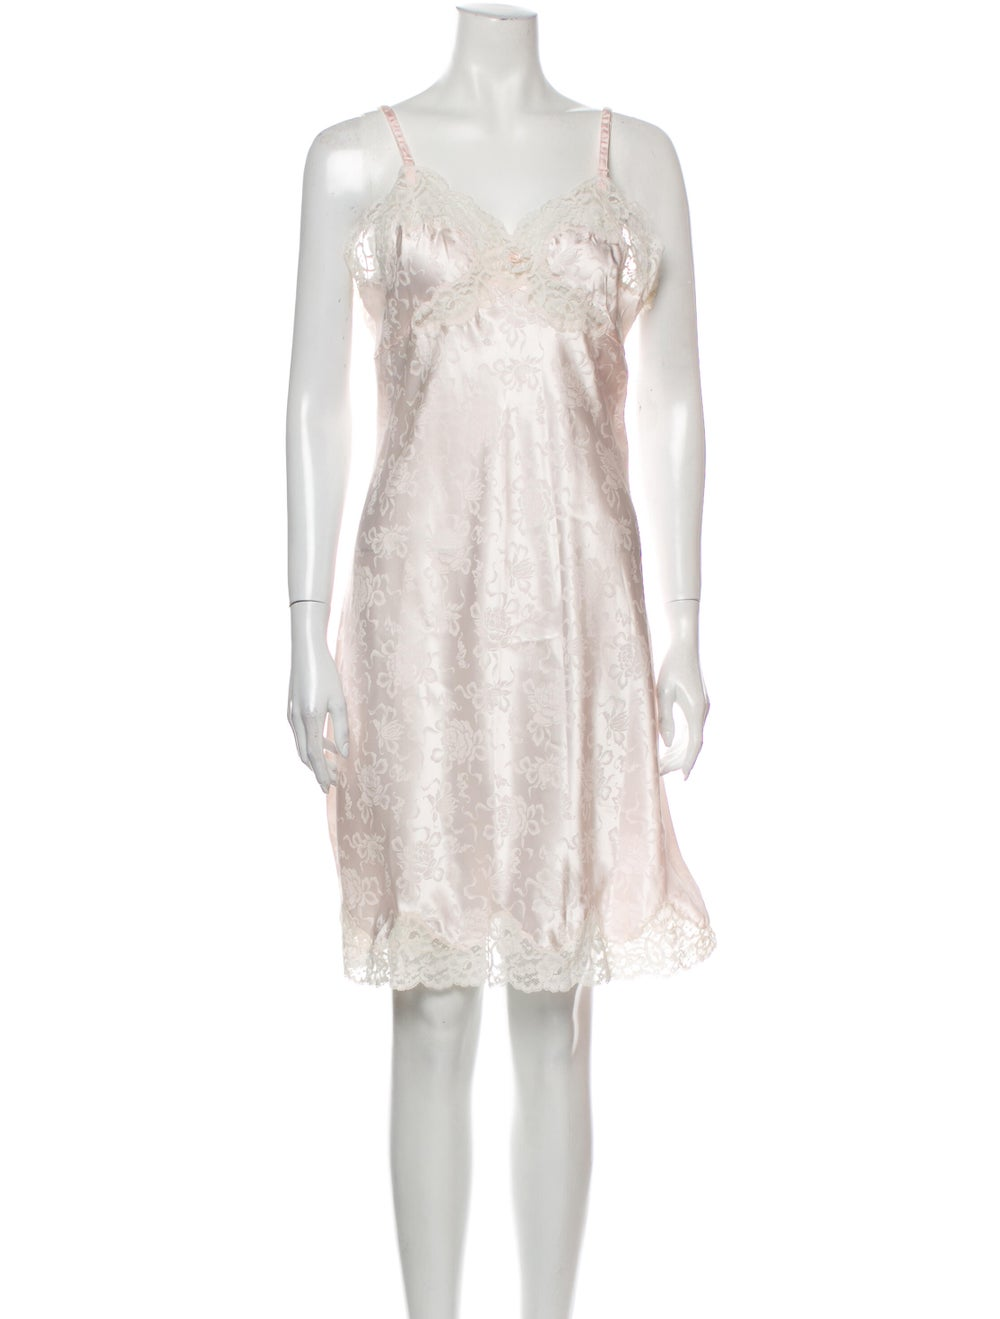 Christian Dior Vintage Floral Print Nightgown Pink - image 1